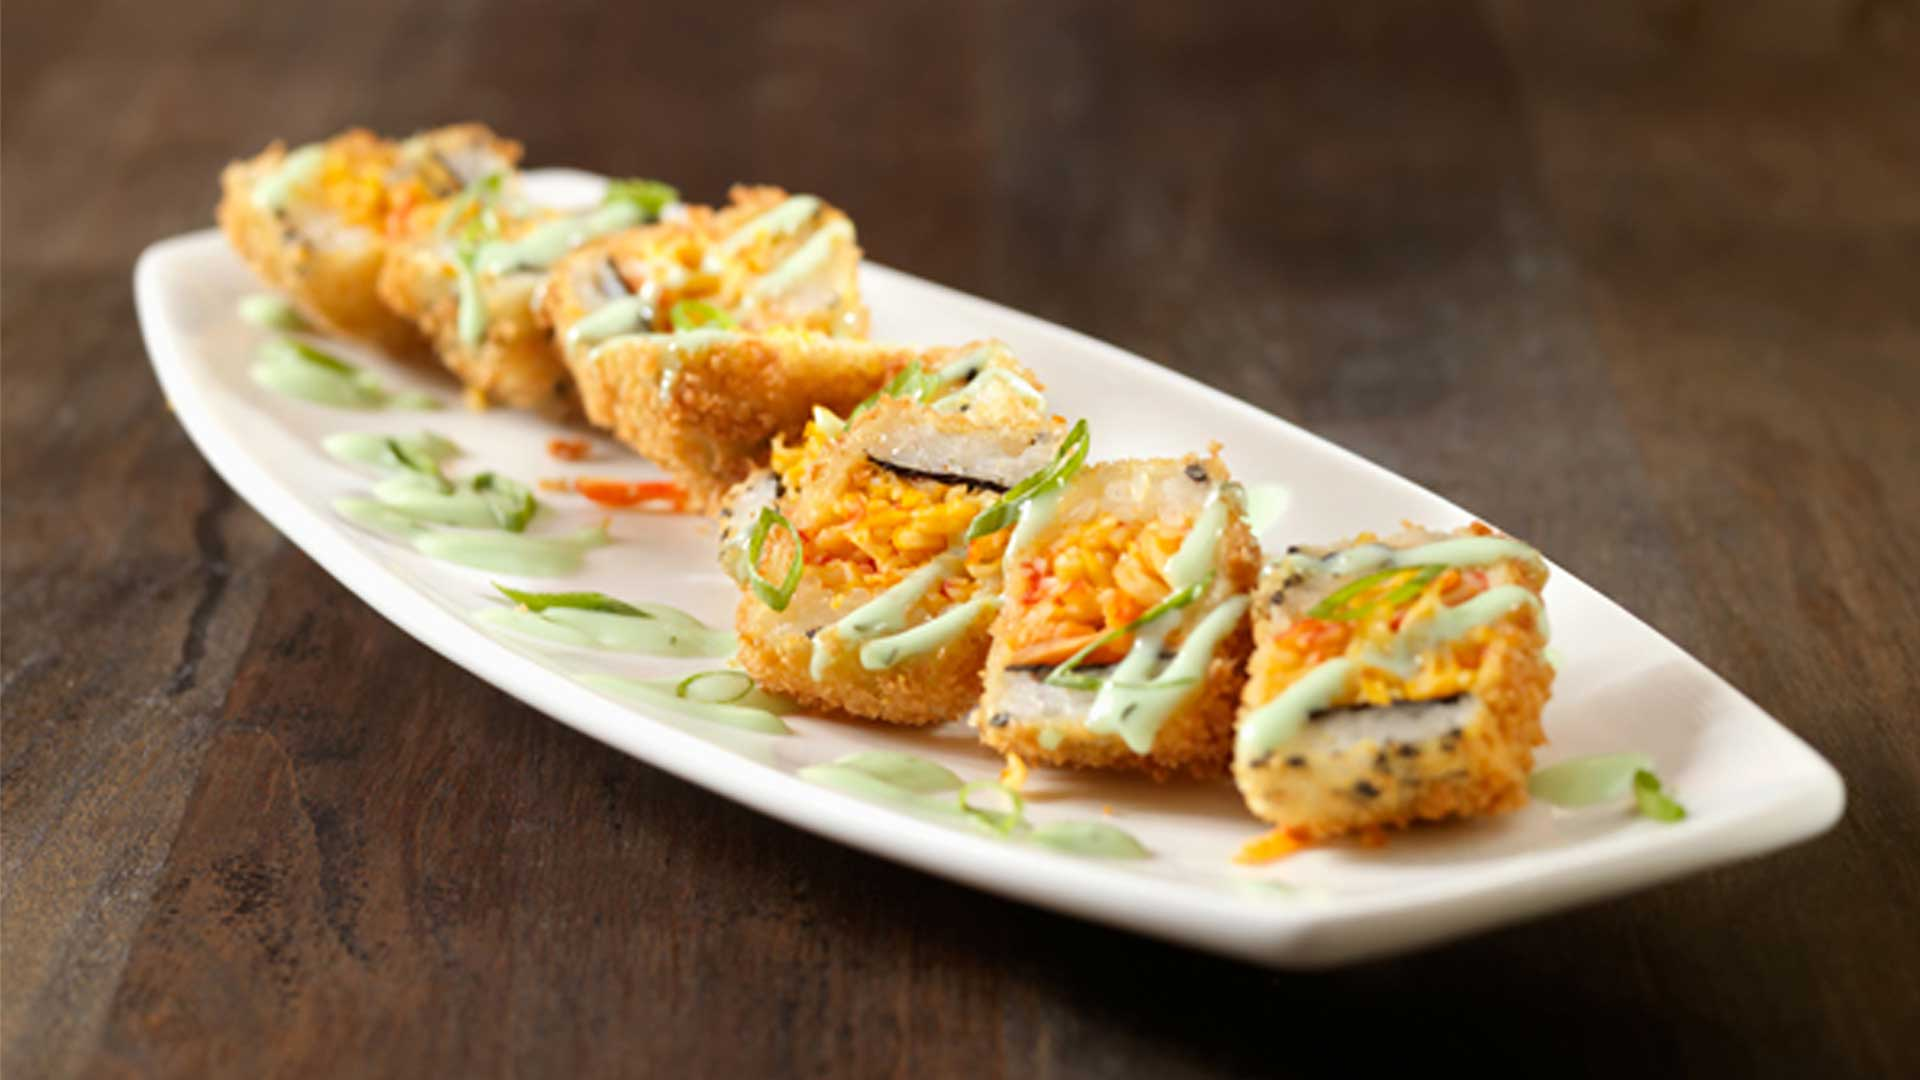 We also have great appetizers like the Sushi Crunch